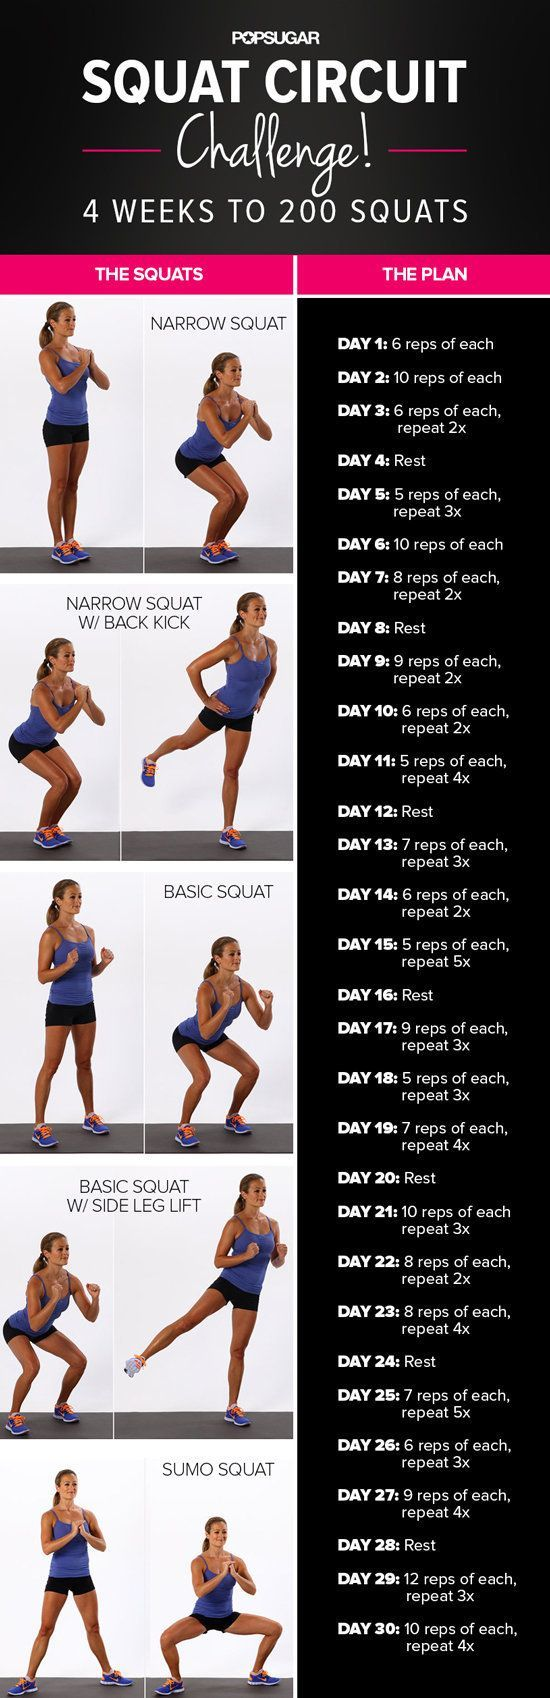 Squat challenges are all the rage now, and while it certainly is an accomplishment to work your way up to 200, 500, or even 1,000 squats (yikes!), doing the same kind only works certain muscles. Here's a new challenge for you to try. It involves five different squat variations that you repeat and eventually work up to 200 reps in 30 days.